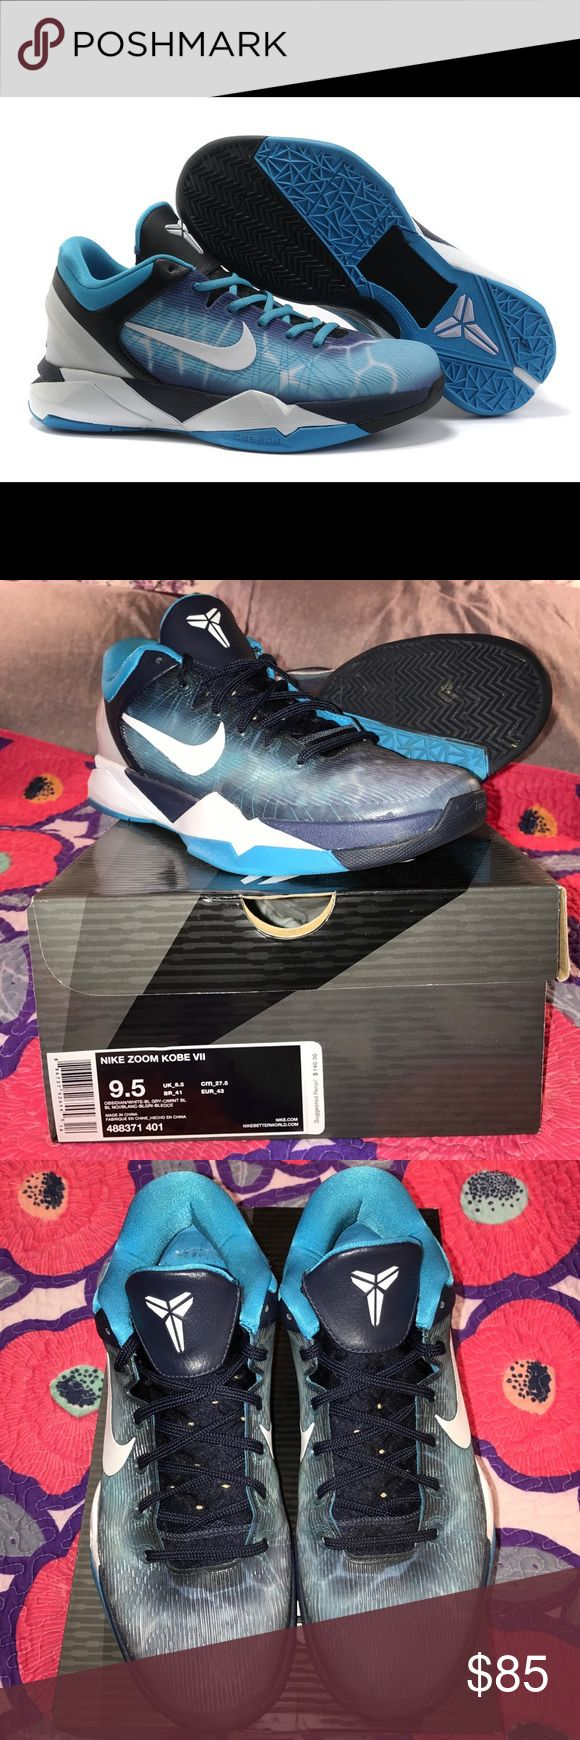 NIKE ZOOM KOBE VII, Shark, Men's 9.5 LIKE NEW!! NIKE ZOOM KOBE VII, GREAT WHITE SHARK, Men's 9.5. Color: Obsidian, white, black, gray, current blue. Bright white--no discolorations! Never worn during activity. Worn less than 5 times for looks. LOOK NEW, no scuffs!! PERFECT TREAD! Nike symbol on outside and inside. Shape is GREAT due to keeping them packaged. Originally $140, reselling for $85. Comes from a smoke-free home:) Nike Shoes